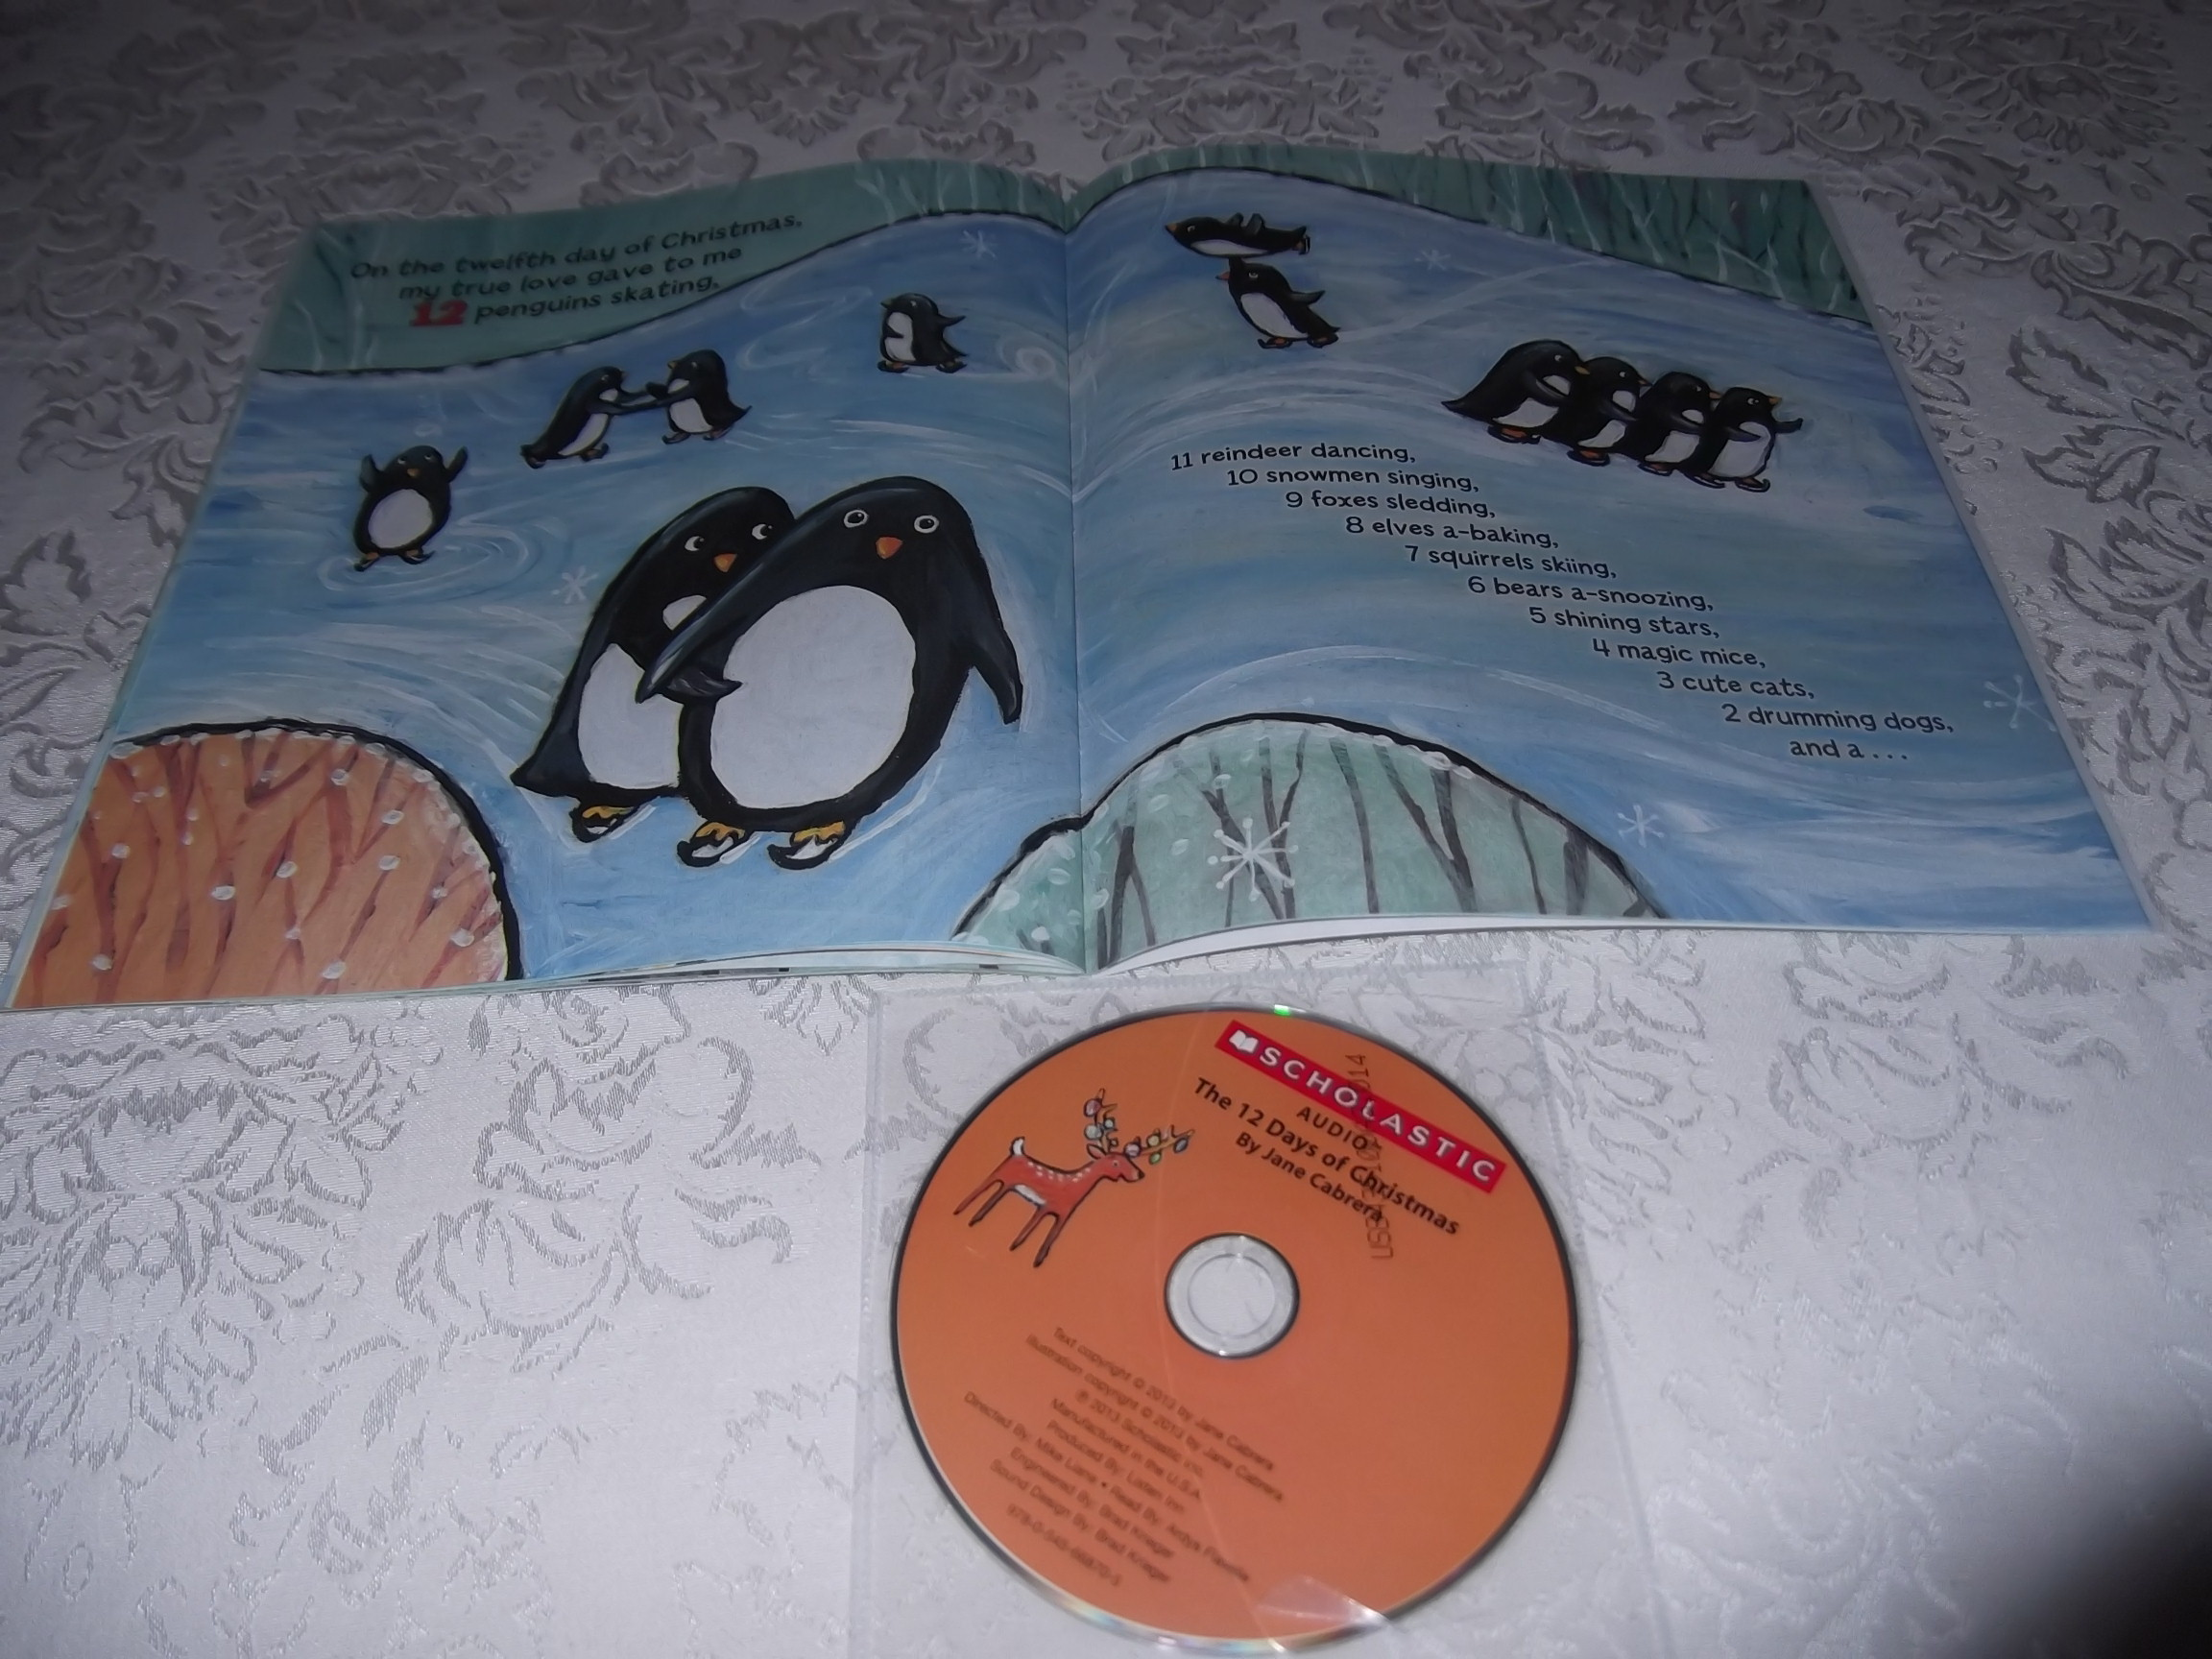 Image 3 of The 12 Days of CHRISTMAS Jane Cabrera Brand New Audio CD and Softcover